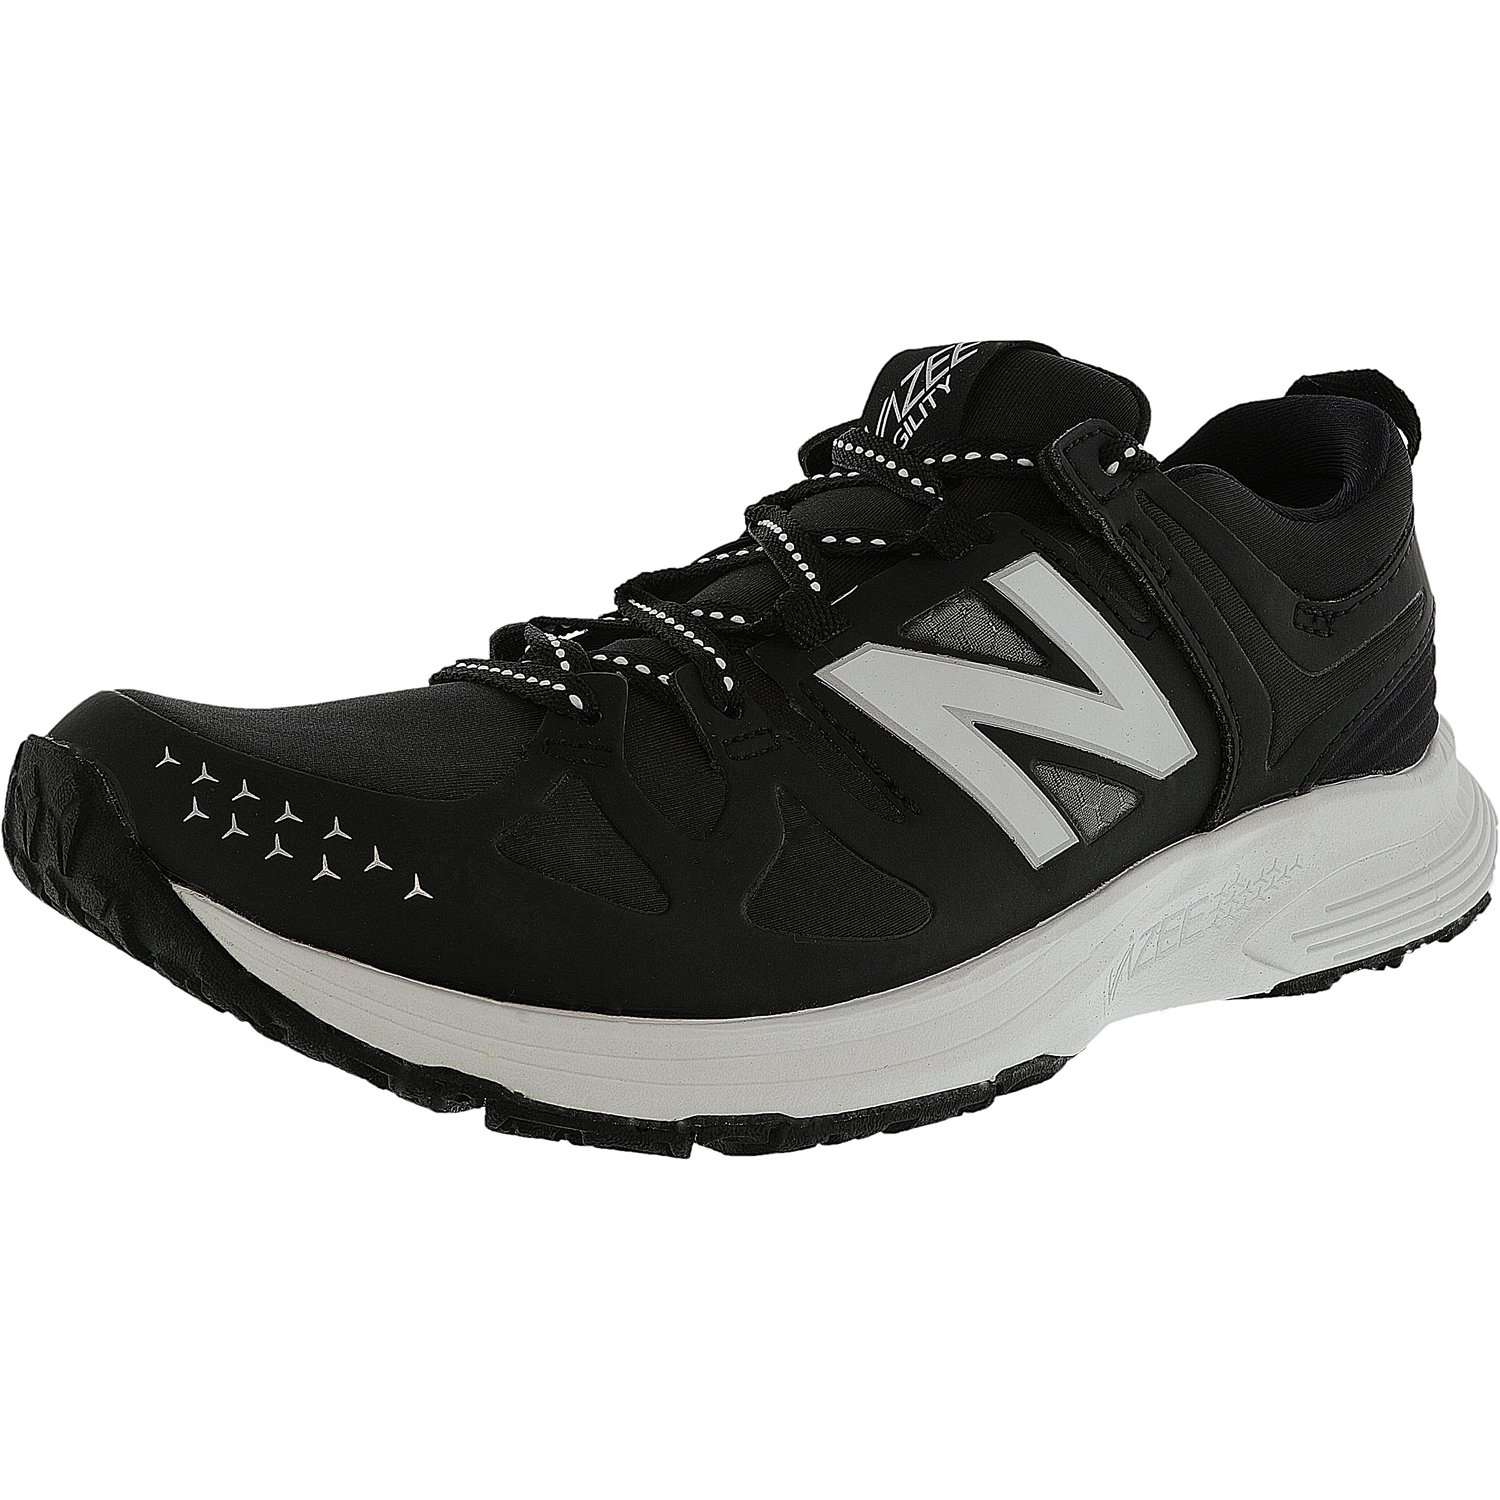 New Balance Women's Wxagl Bk Ankle-High Walking Shoe - 10.5M